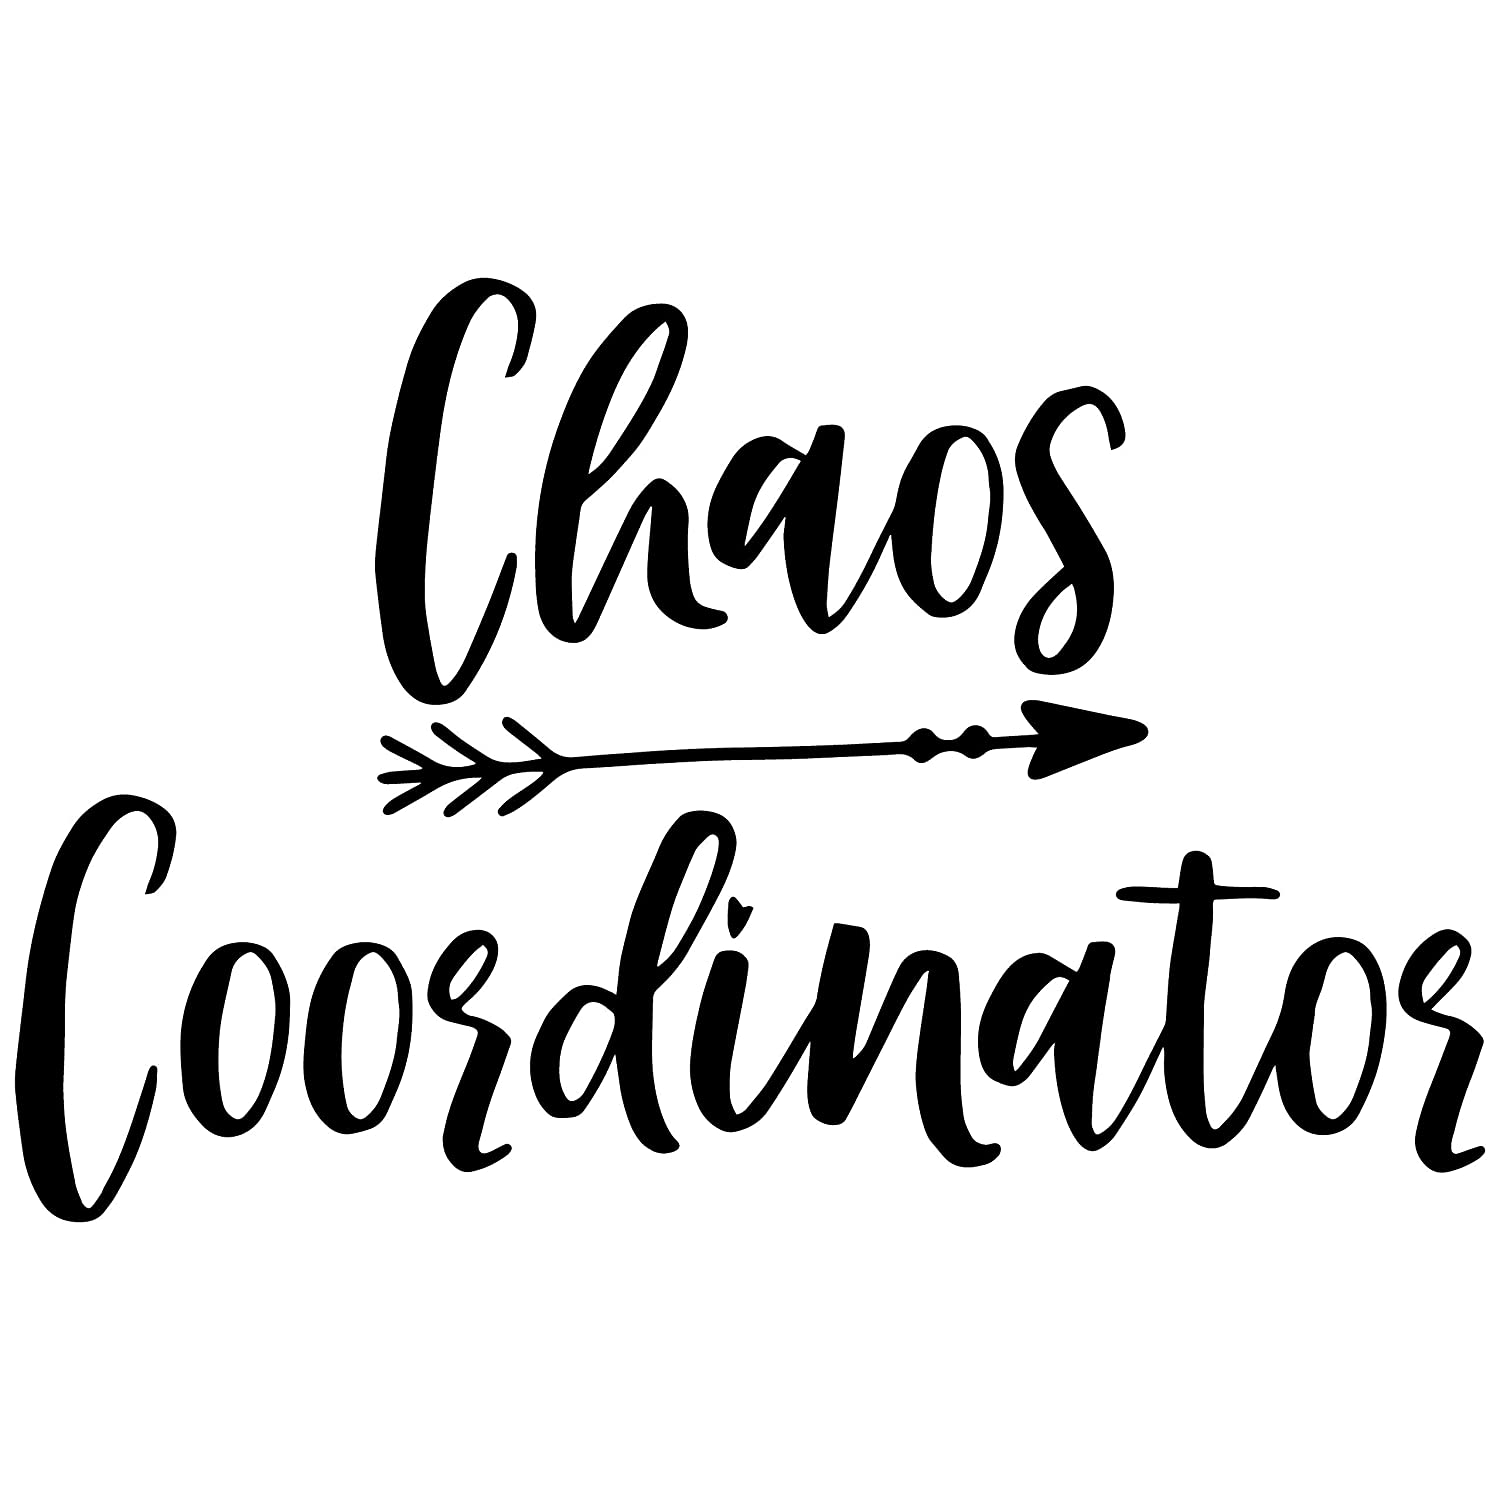 Chaos Coordinator permanent WHITE vinyl decal vinyl decal laptop decal creationsbychad